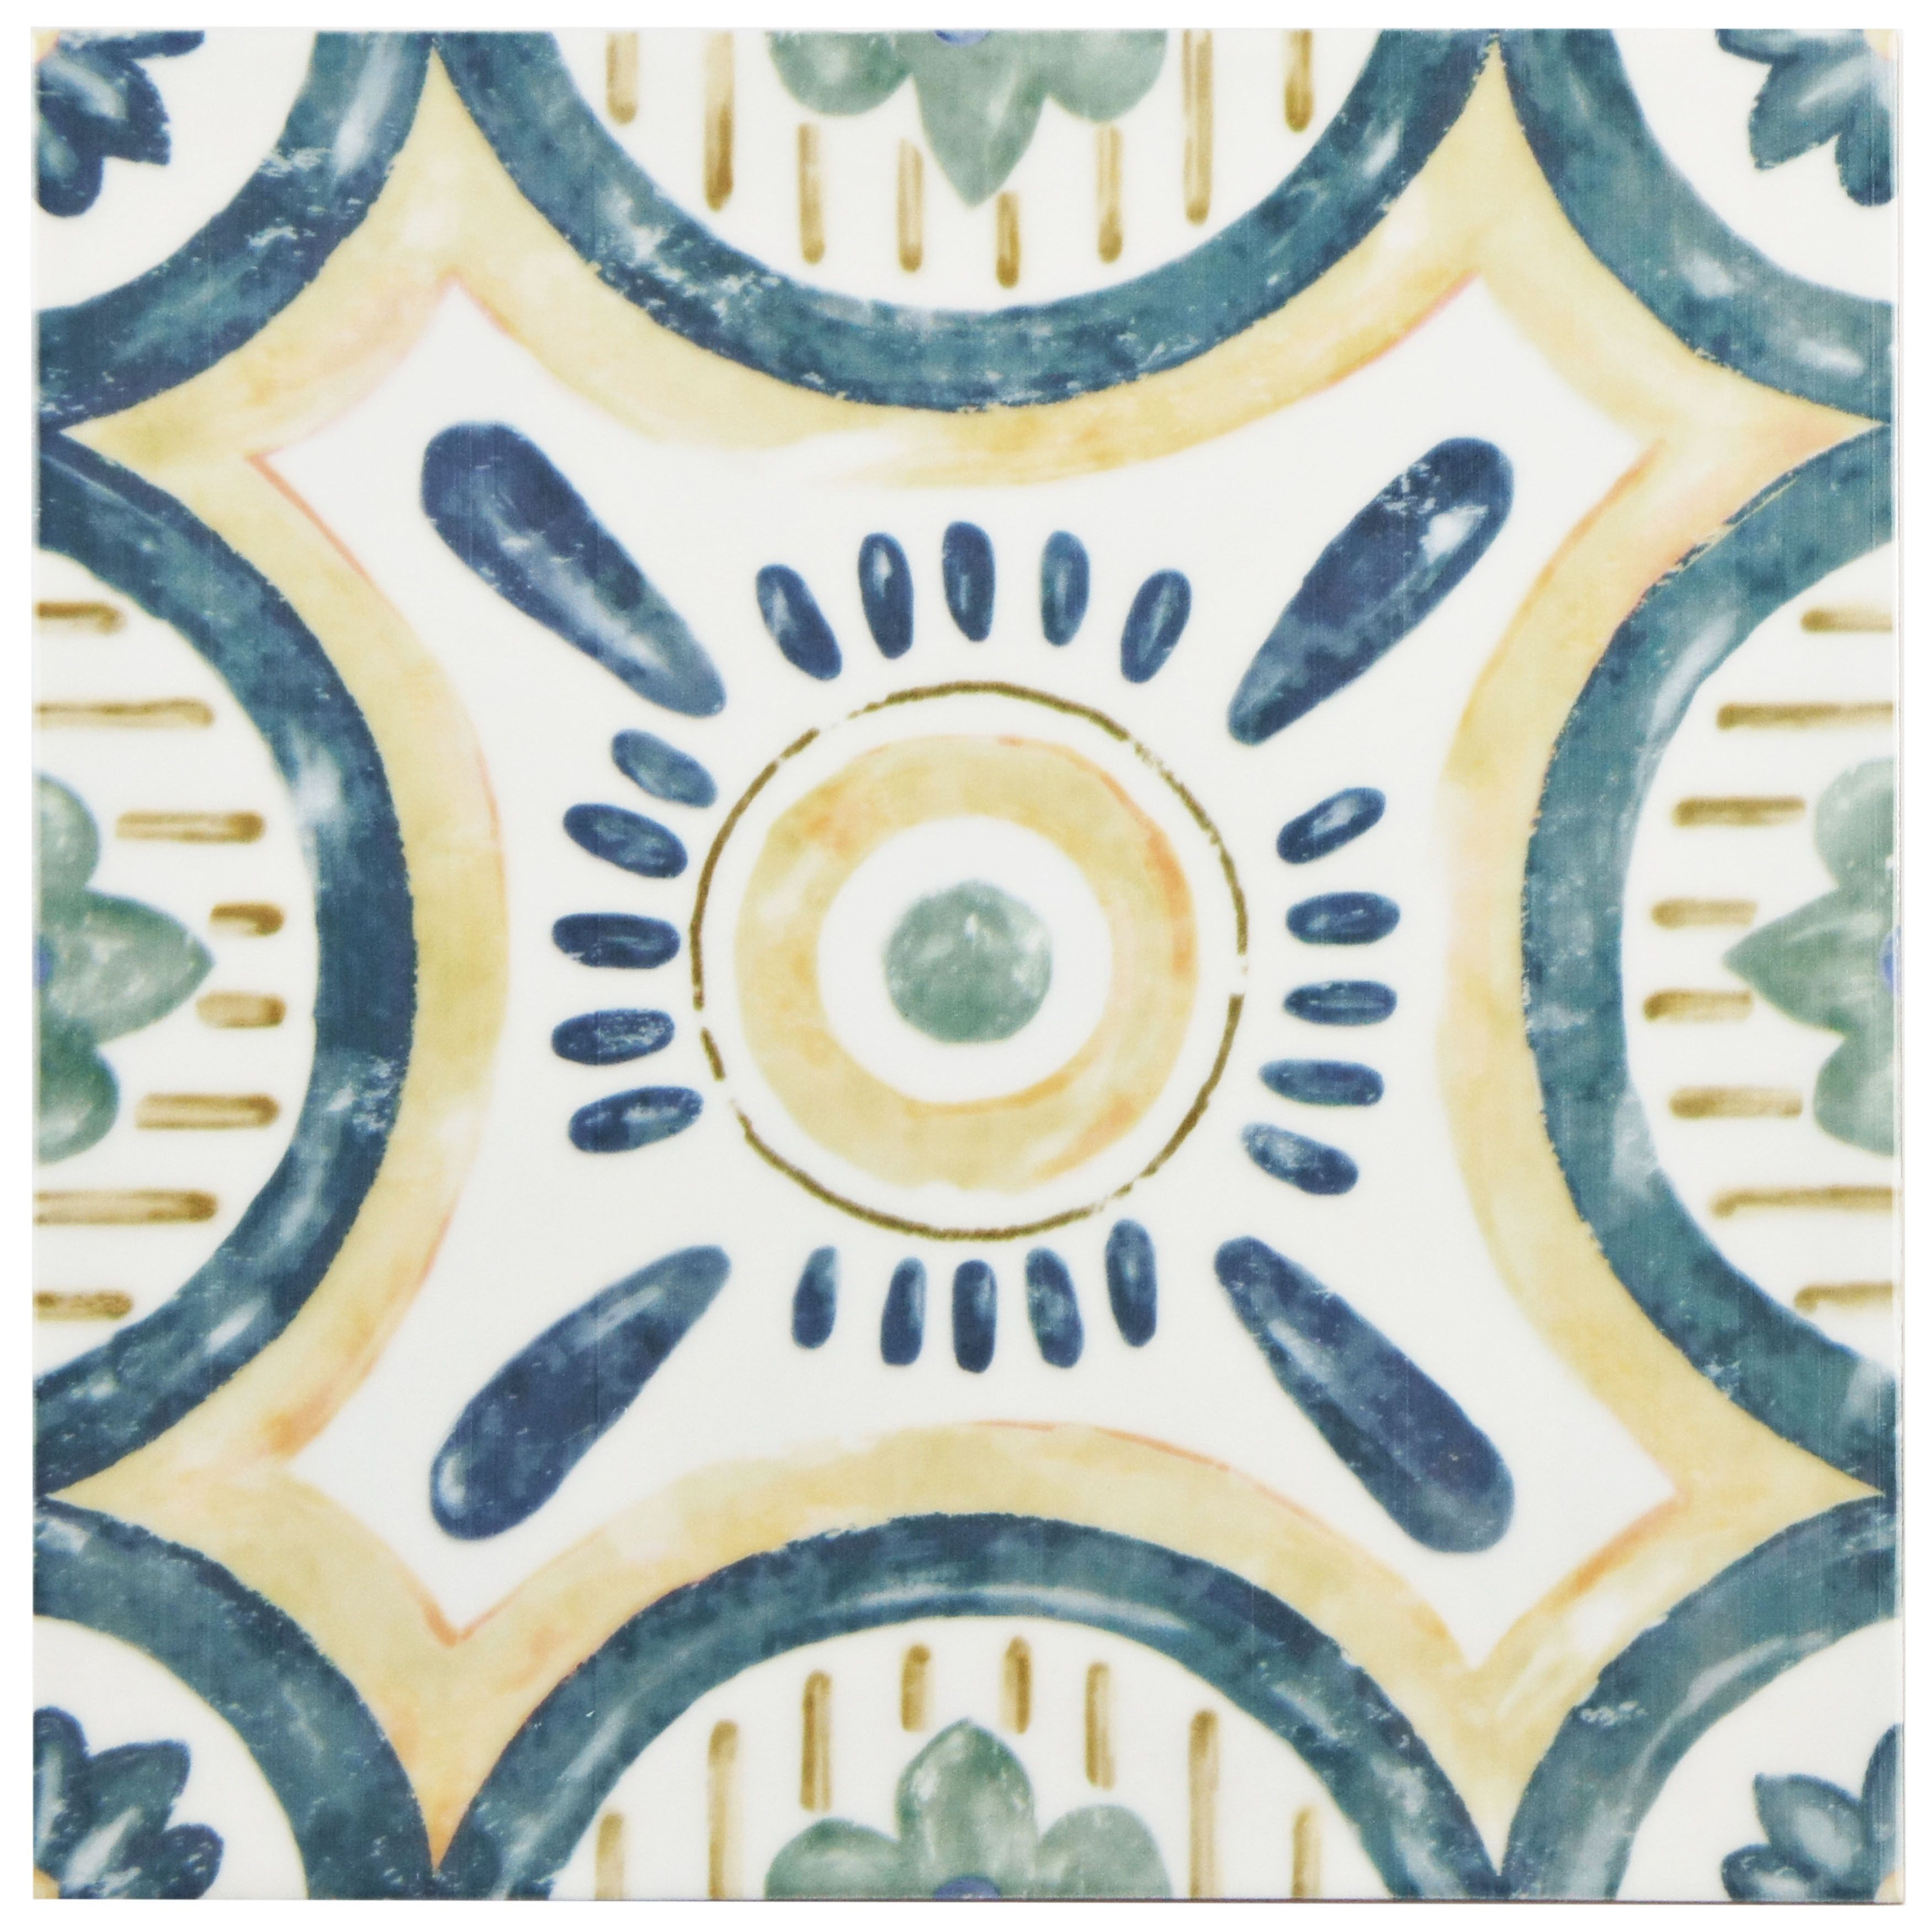 The SomerTile 7.75x7.75-inch Borough Isola Ceramic Wall Tile offers a European look. The tile features a watercolor painting design in forest green, navy blue and goldenrod with a high sheen finish.